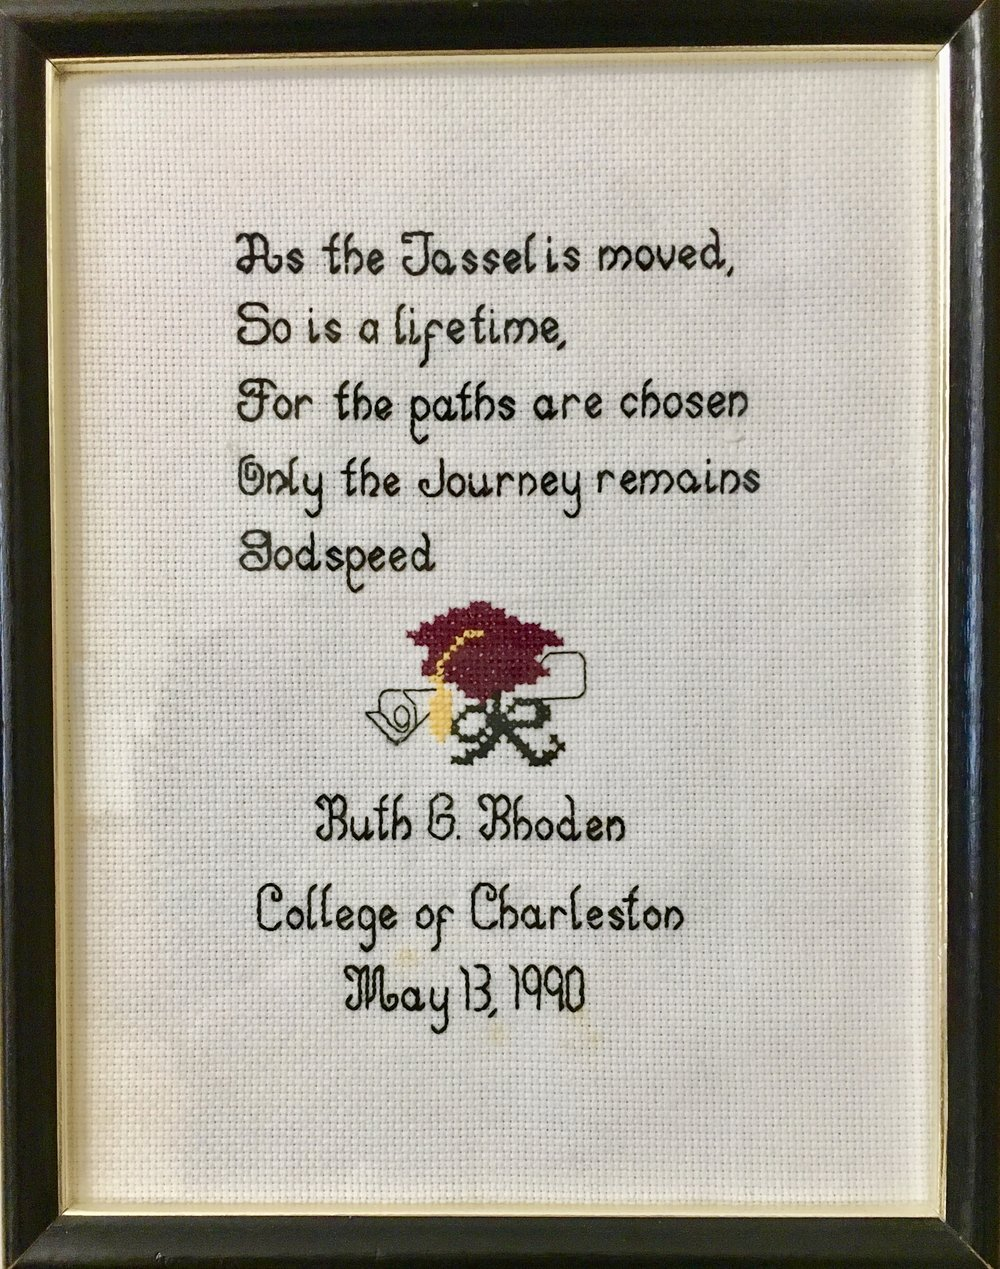 A cross-stitch that hangs in the home of Helena Bradford.